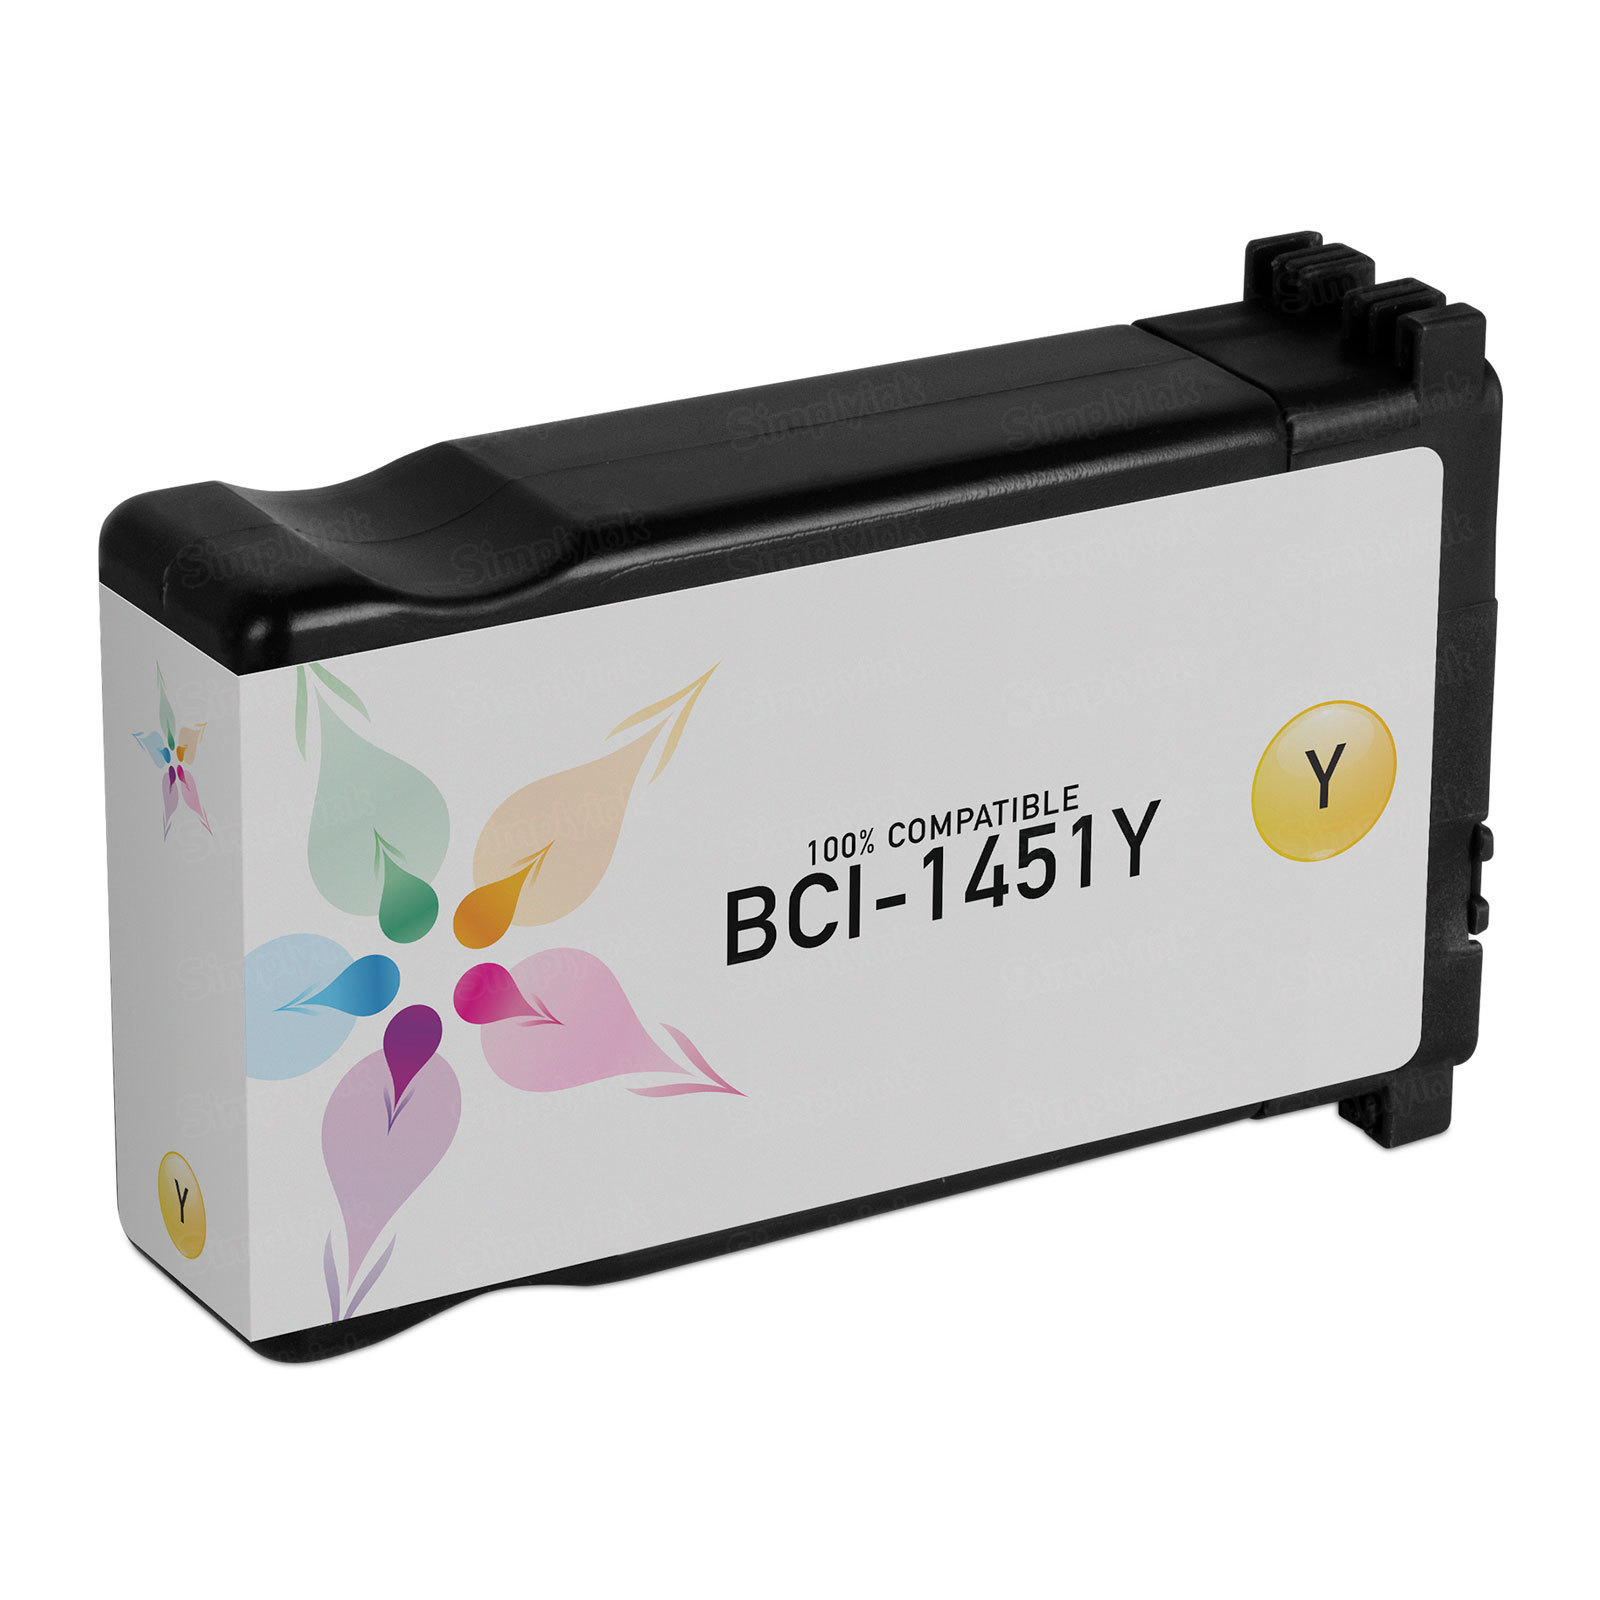 Canon Compatible BCI1451Y Yellow Ink for imagePROGRAF W6200 & W6400